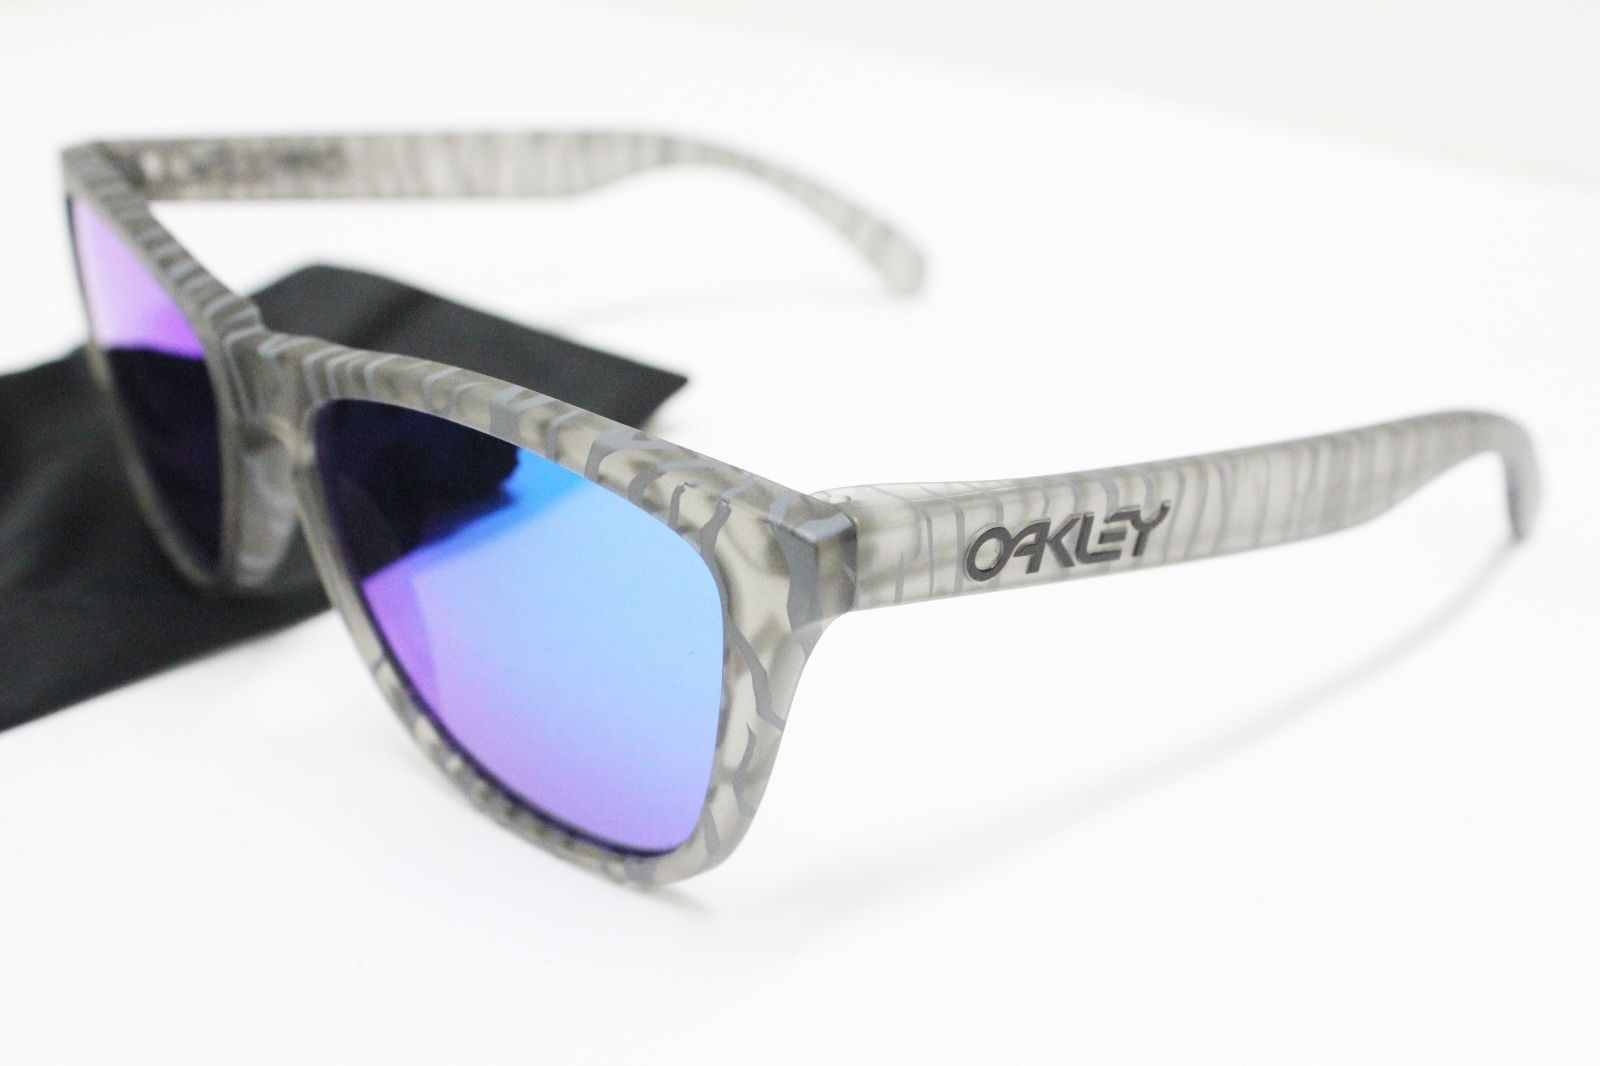 new oakley